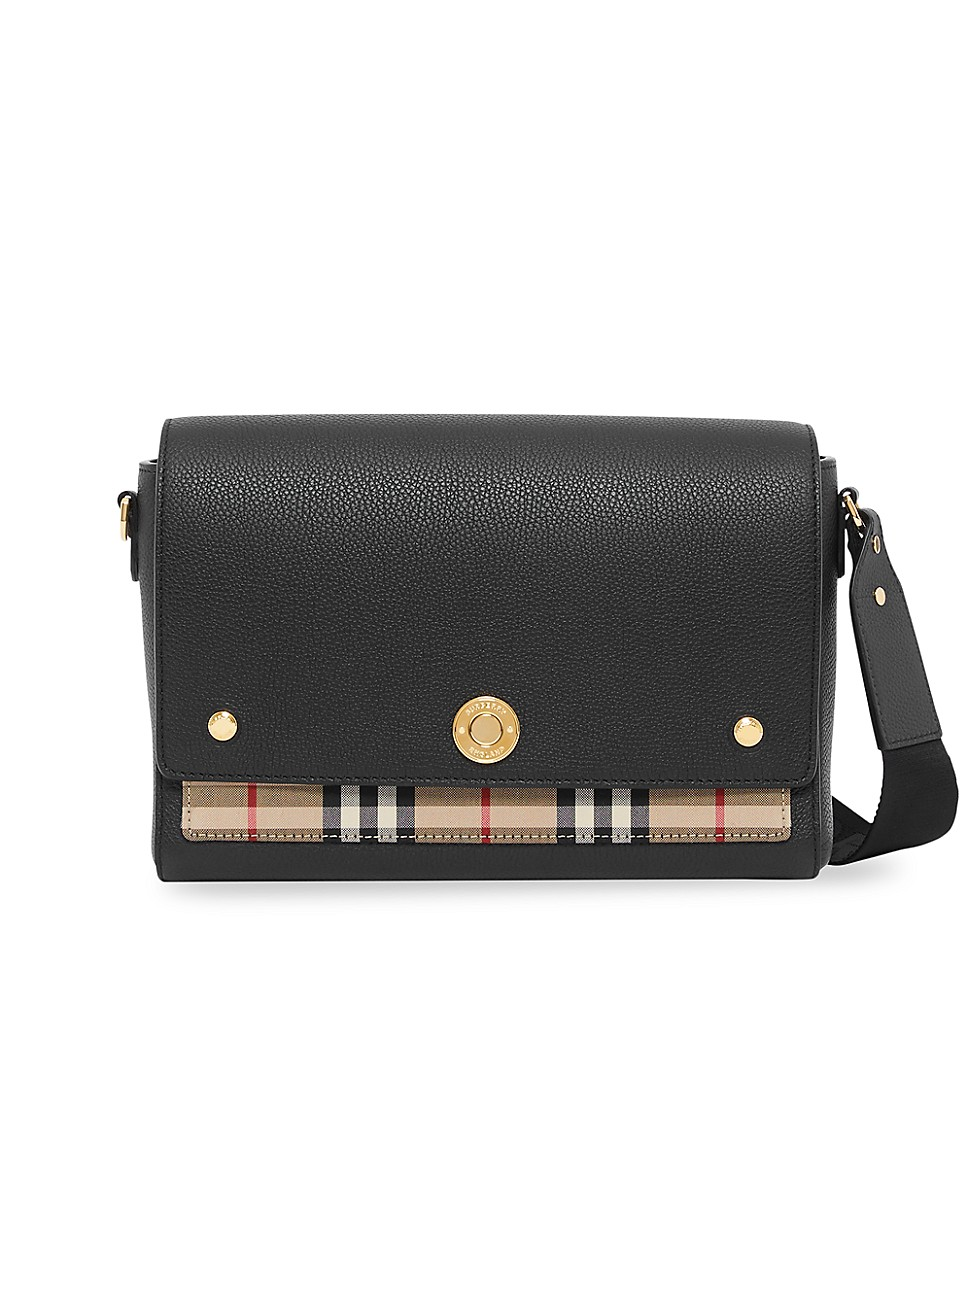 Burberry WOMEN'S MEDIUM NOTE LEATHER & VINTAGE CHECK CROSSBODY BAG